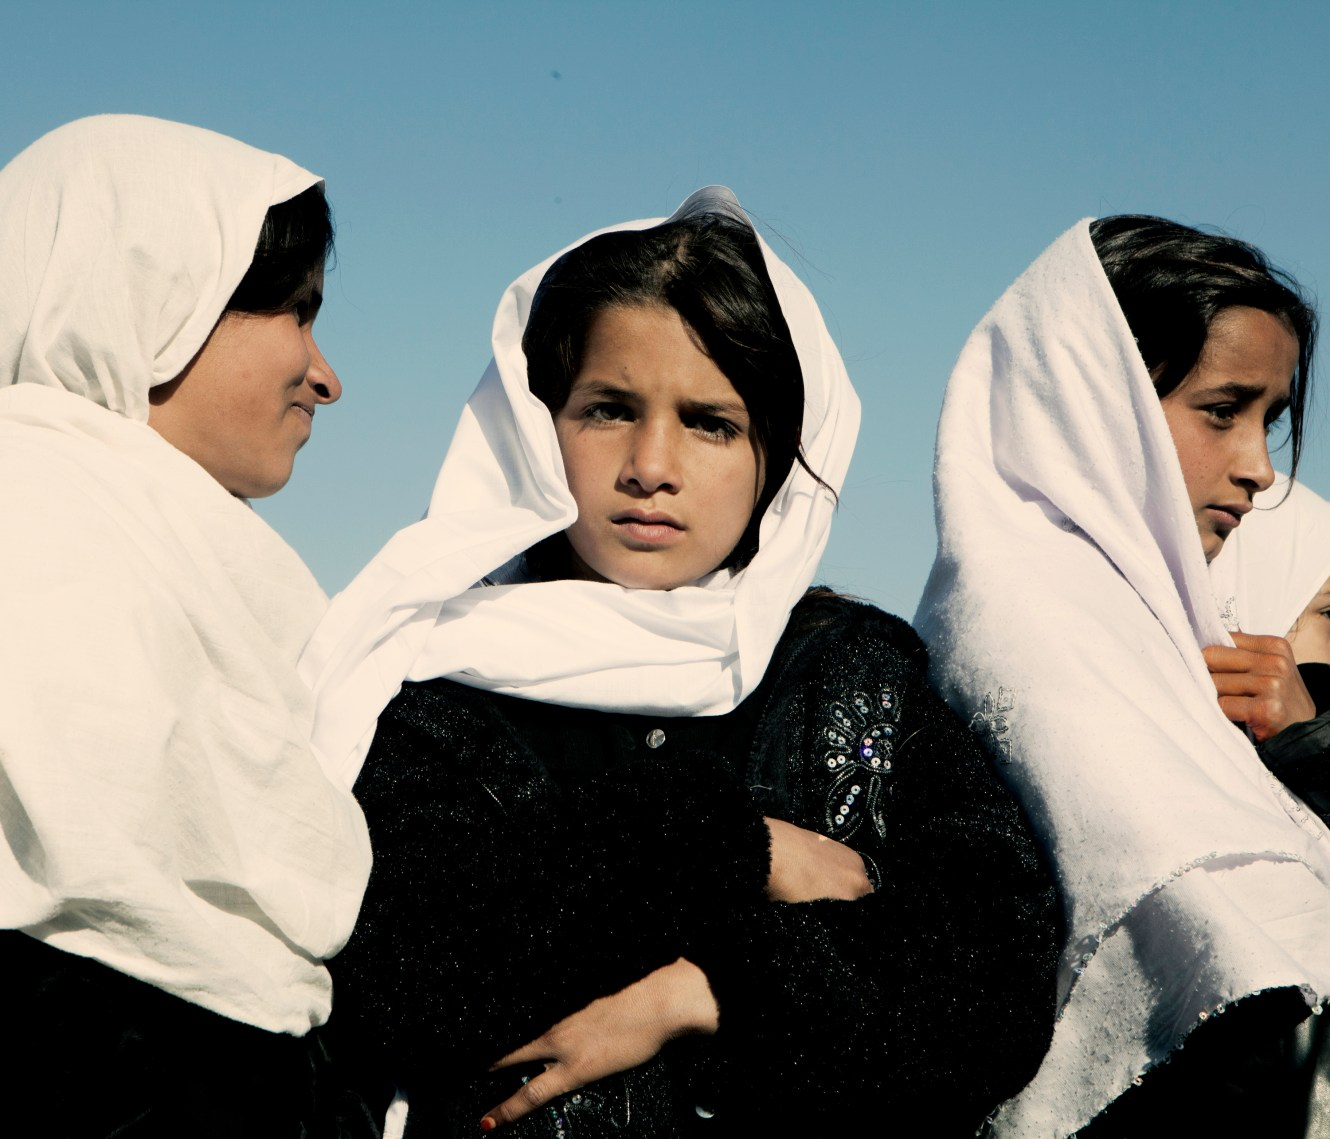 Three school girls wearing white veils. In June 2011, President Obama announced his plan to begin the withdrawal of US troops from Afghanistan, but there is currently no end date for the war in the troubled country. Helmand is the largest province in Afghanistan, and the heart of the war against terror. Commanders on the ground have described the situation as the most brutal conflict the British Army has been involved in since the Korean War. Much of the fighting between NATO and Taliban forces is taking place in this province and Helmand is a true Taliban stronghold. The Helmand River flows through the mainly desert region. With these images I am trying to show a softer side to this troubled area of Afghanistan.